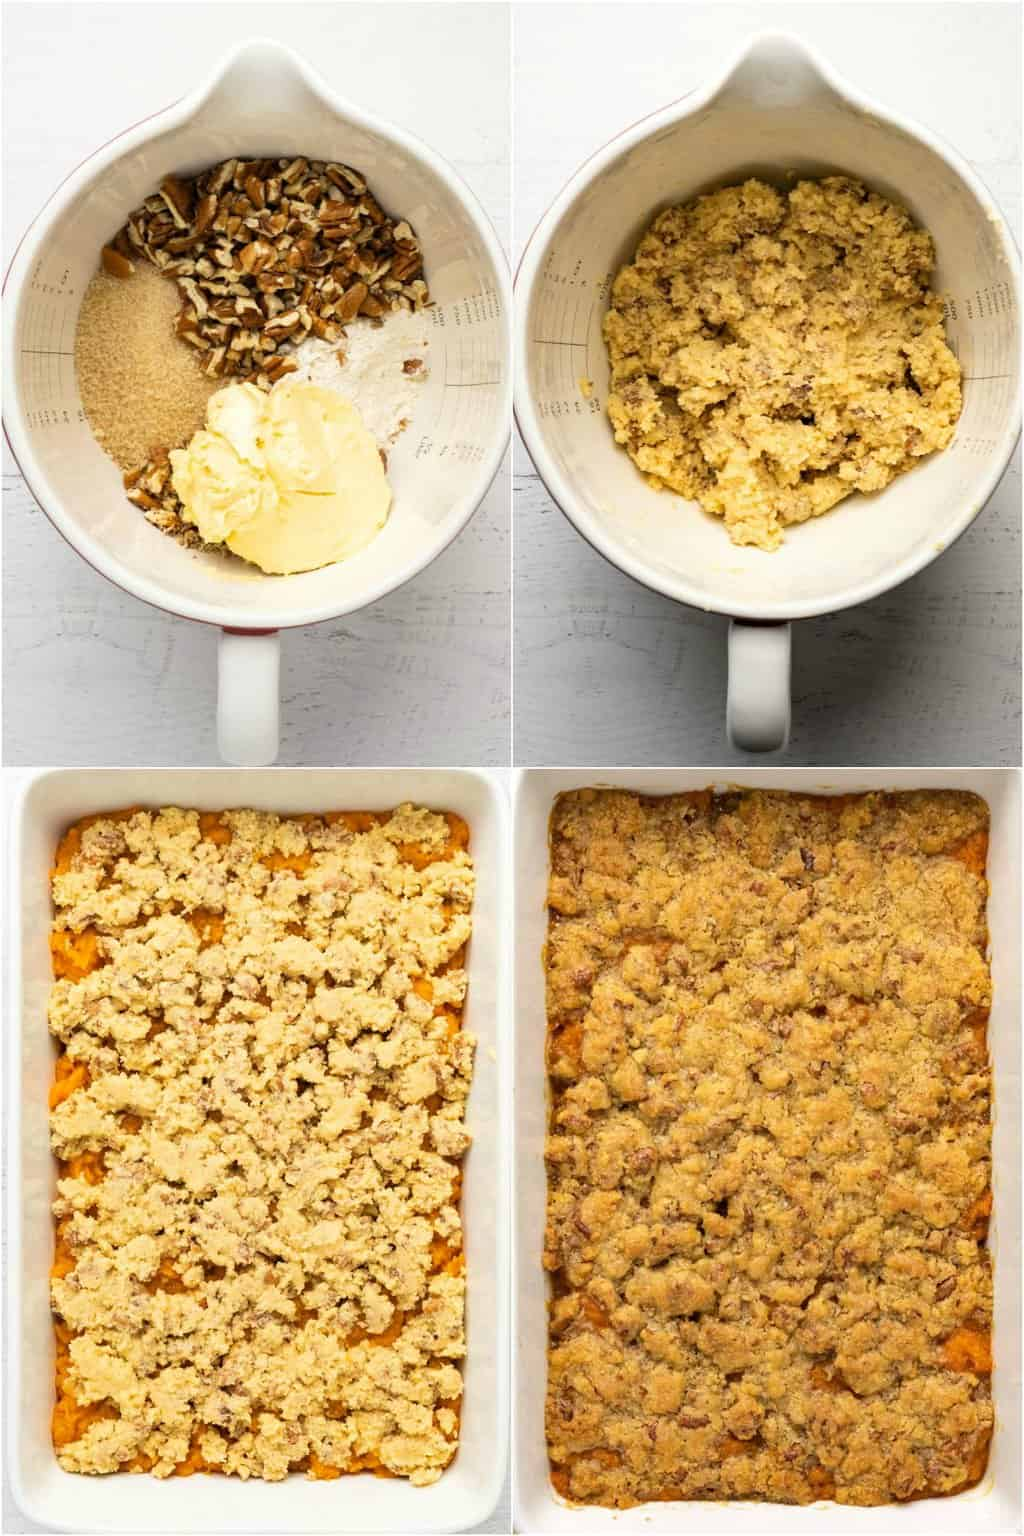 Step by step process photo collage of making the streusel topping and assembling a vegan sweet potato casserole